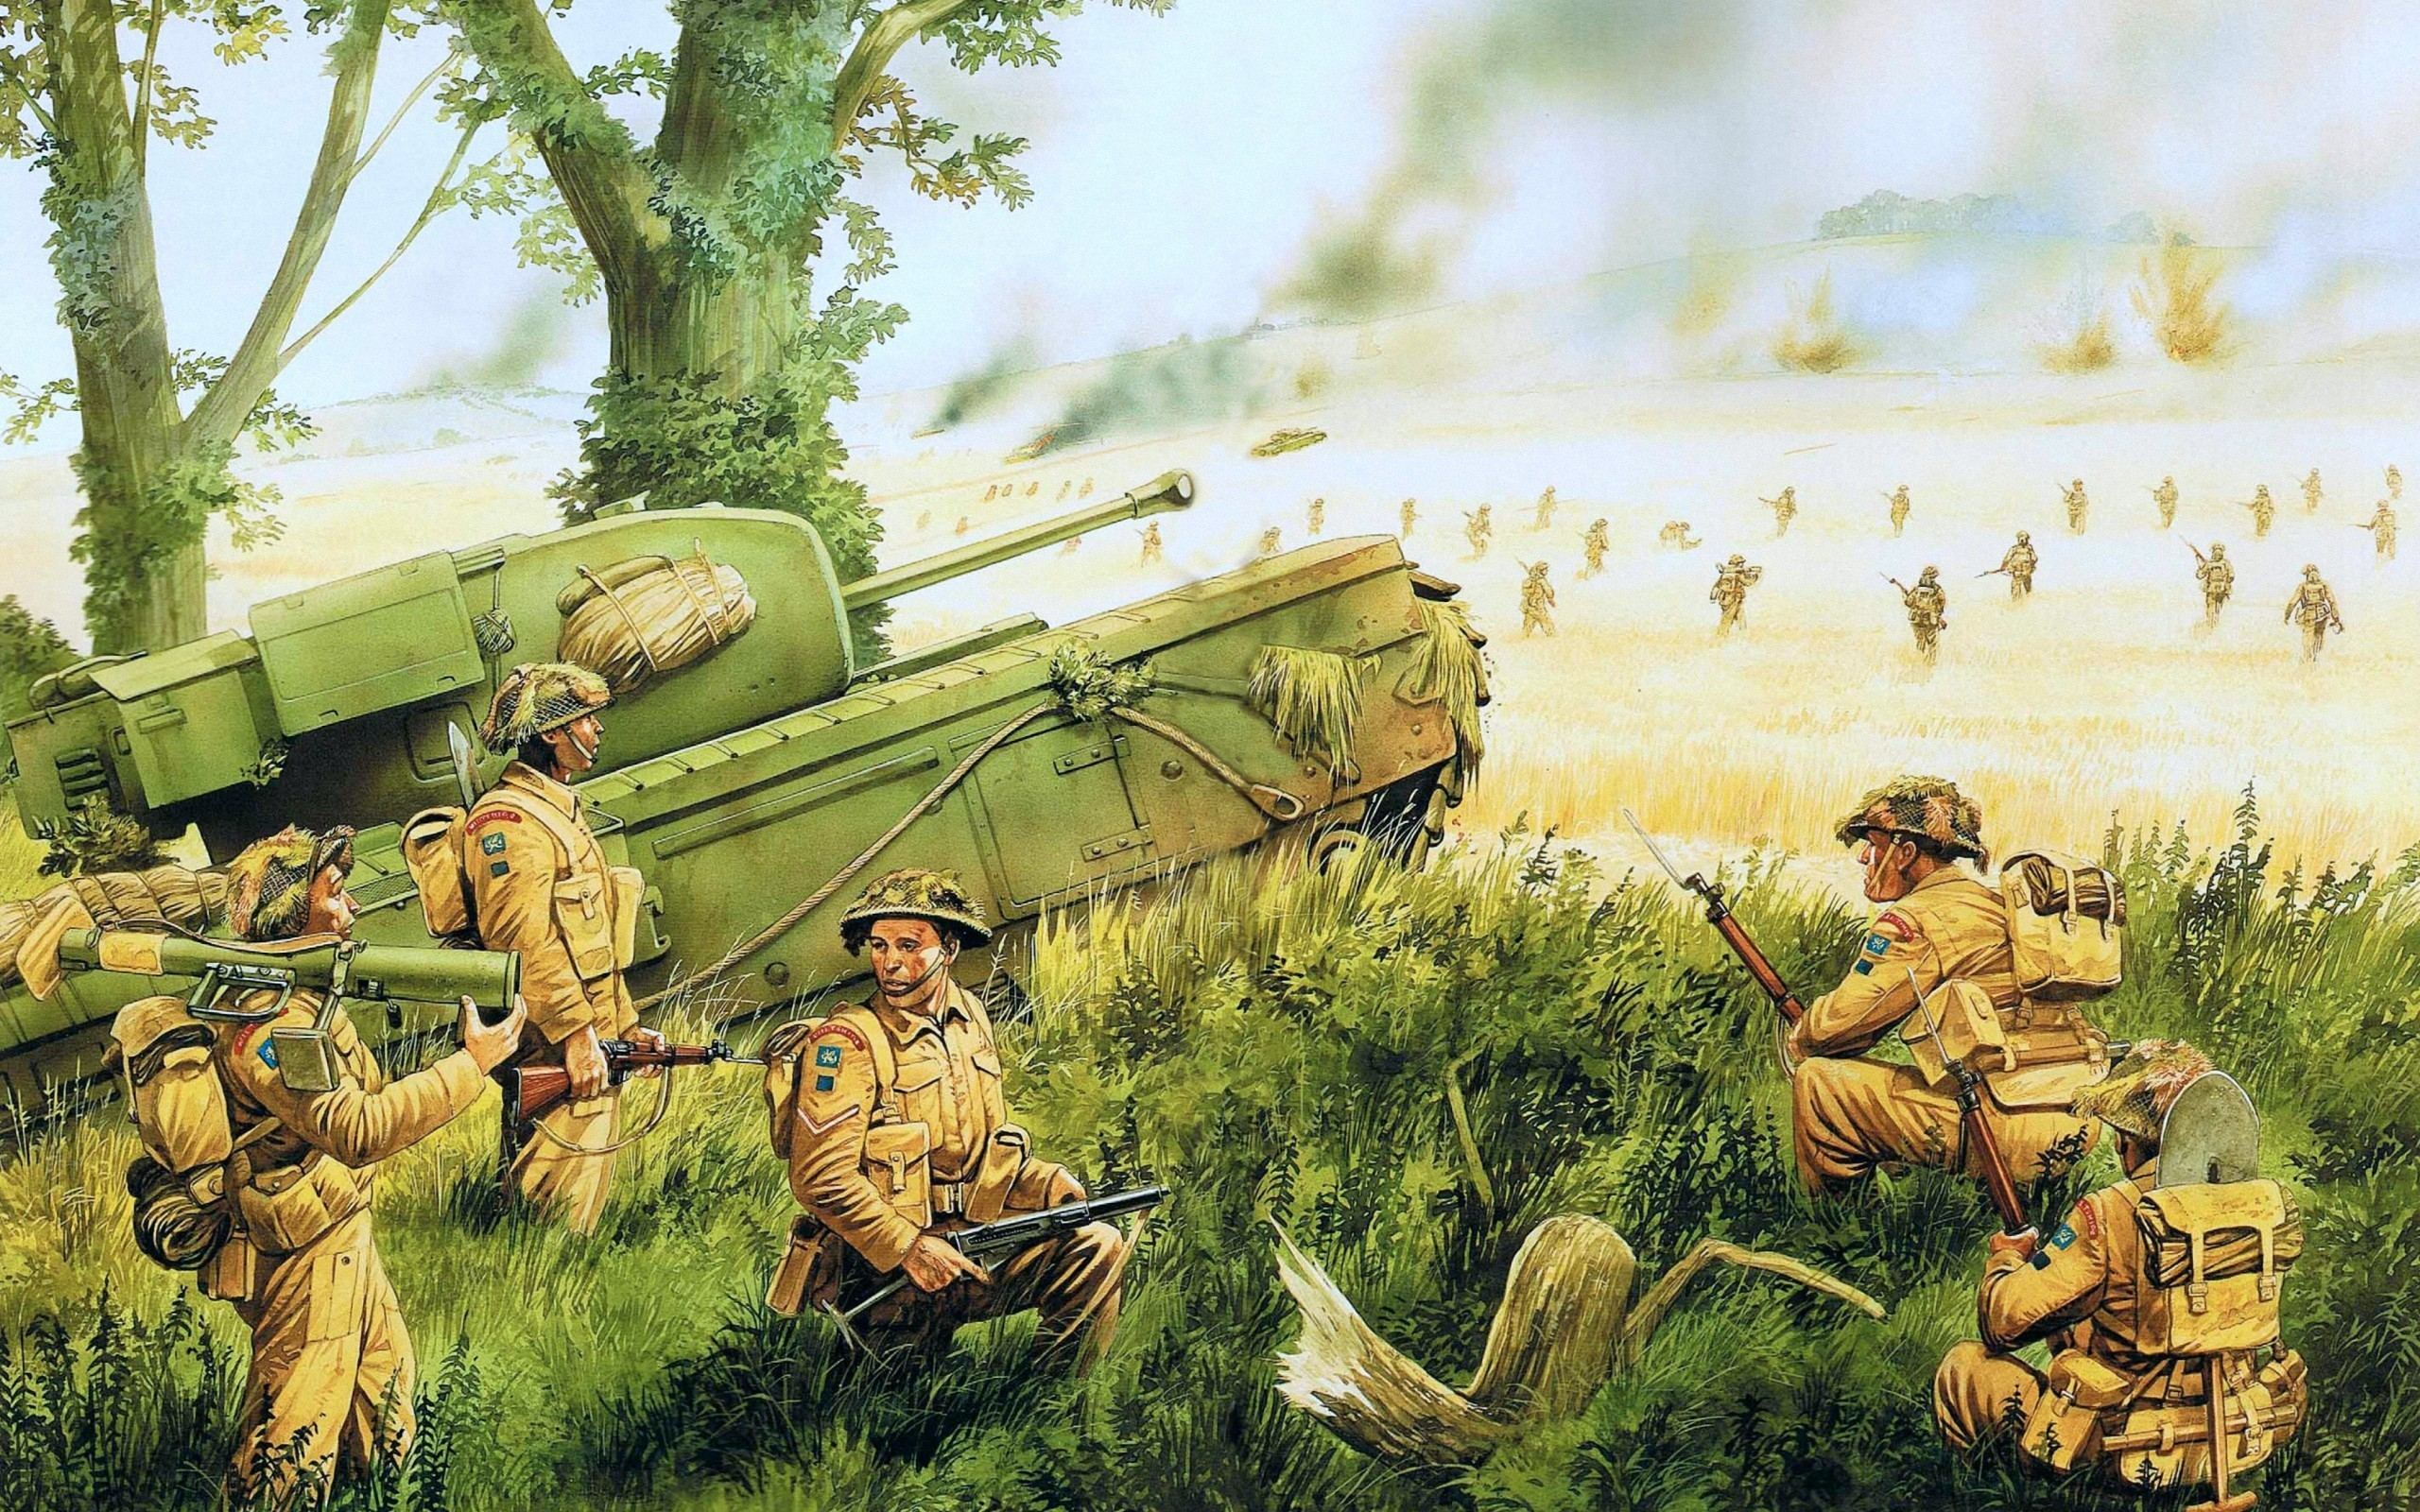 army world war ii and british The british army in world war ii by 1945 britain had failed to produce any tank truely fit to fight the germans after more than five years of war.